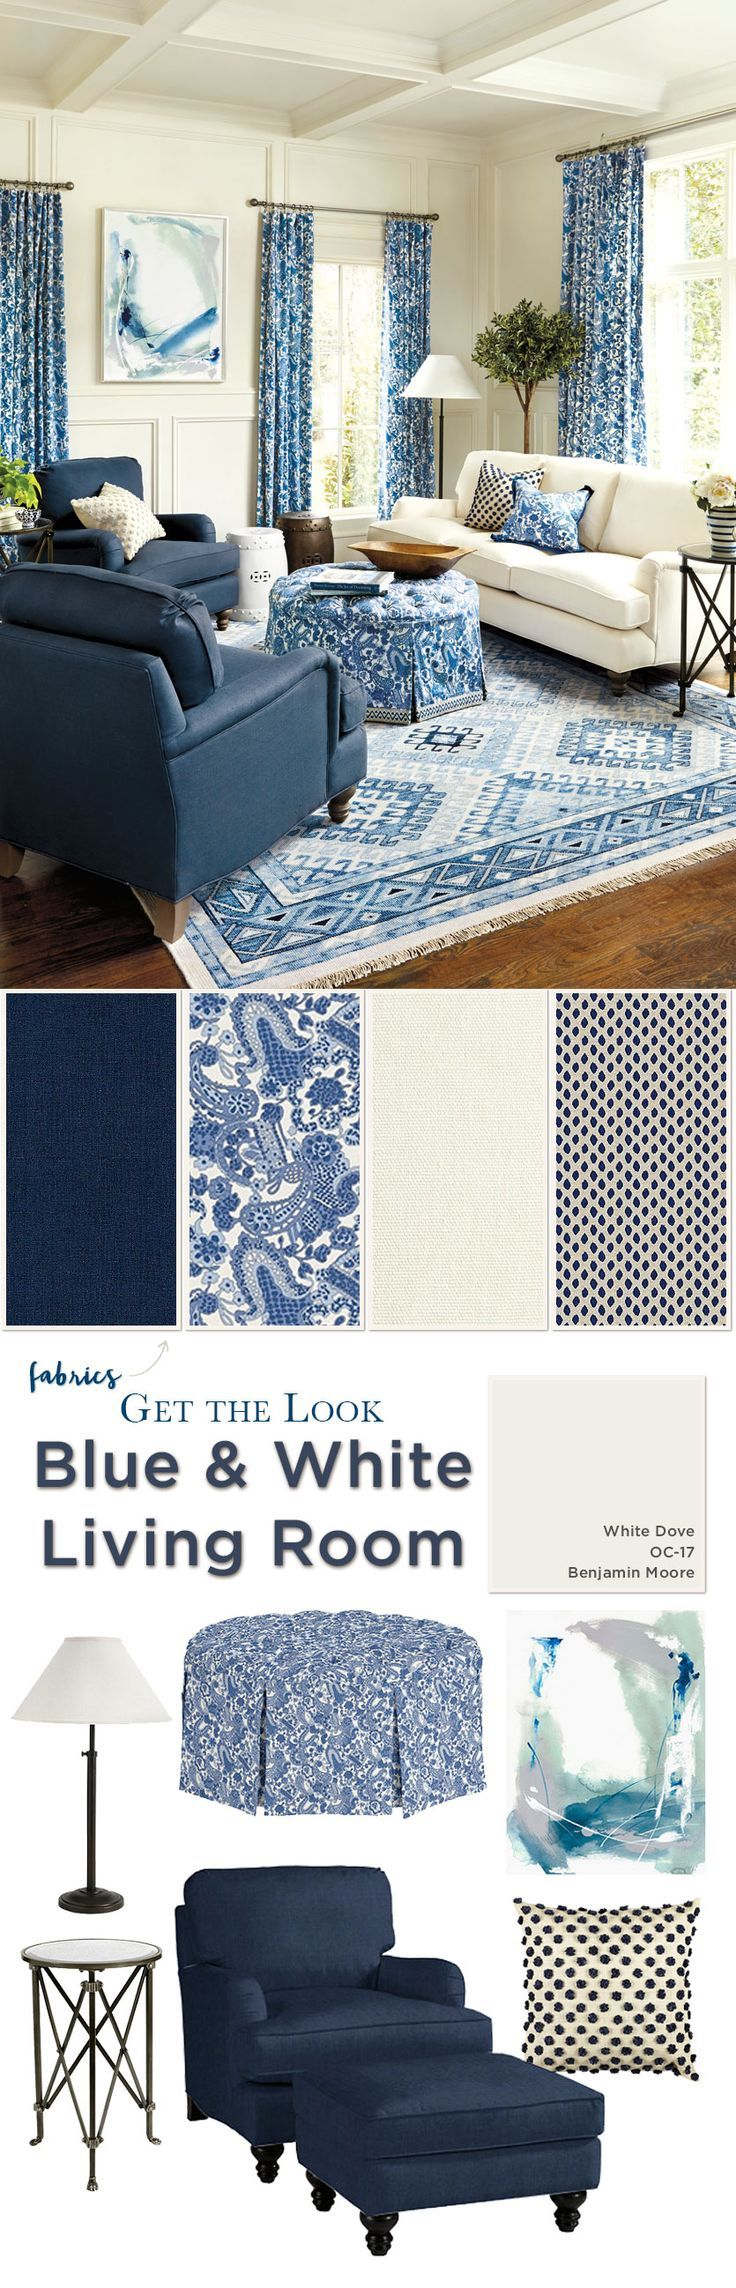 Get the look of this blue and white living room from Ballard Designs